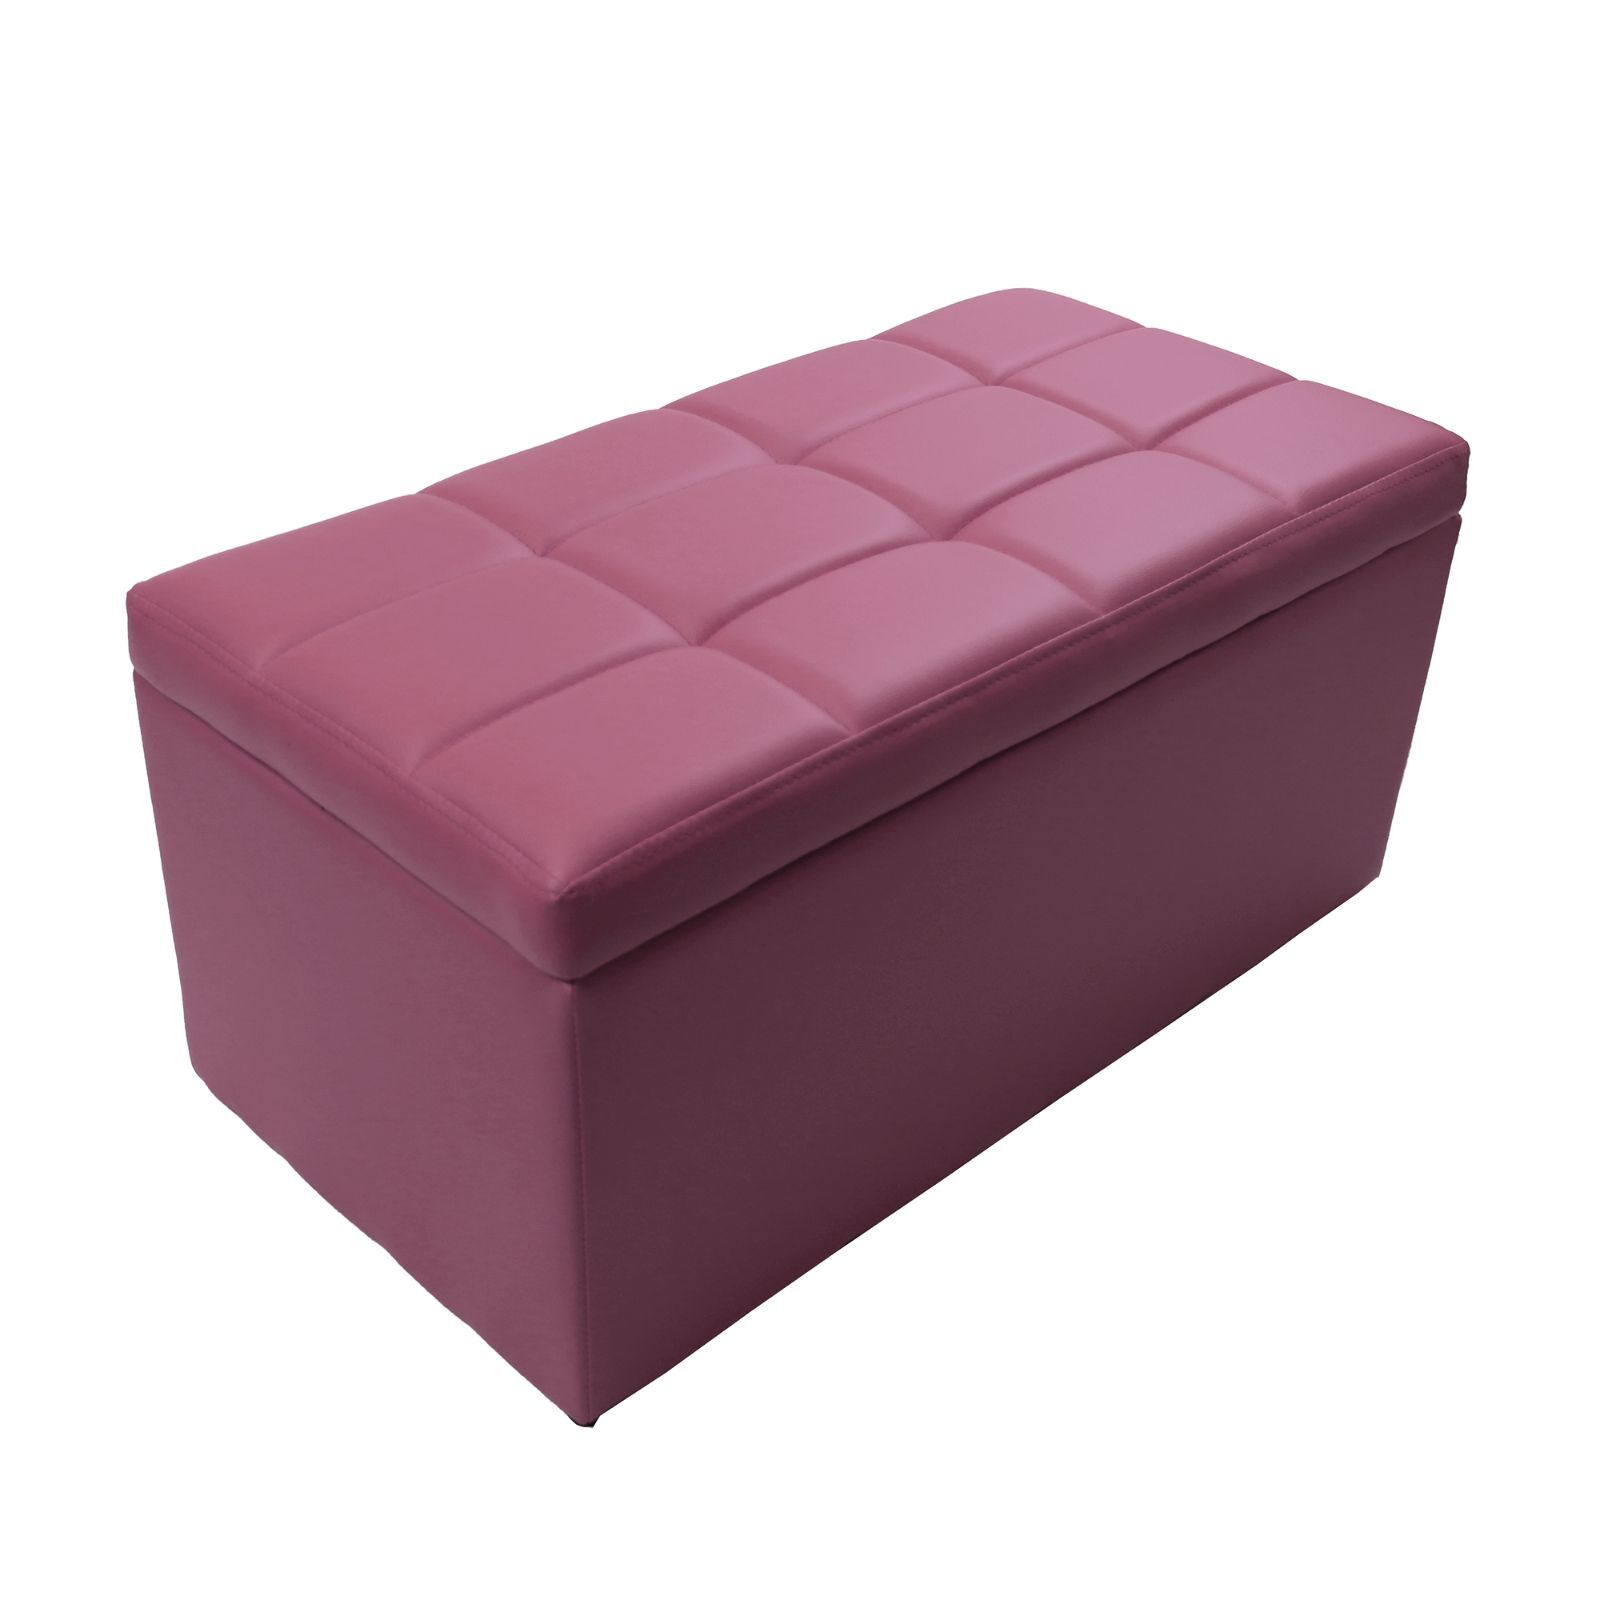 Living storage ottoman bench footstools seat table for Storage ottoman seat